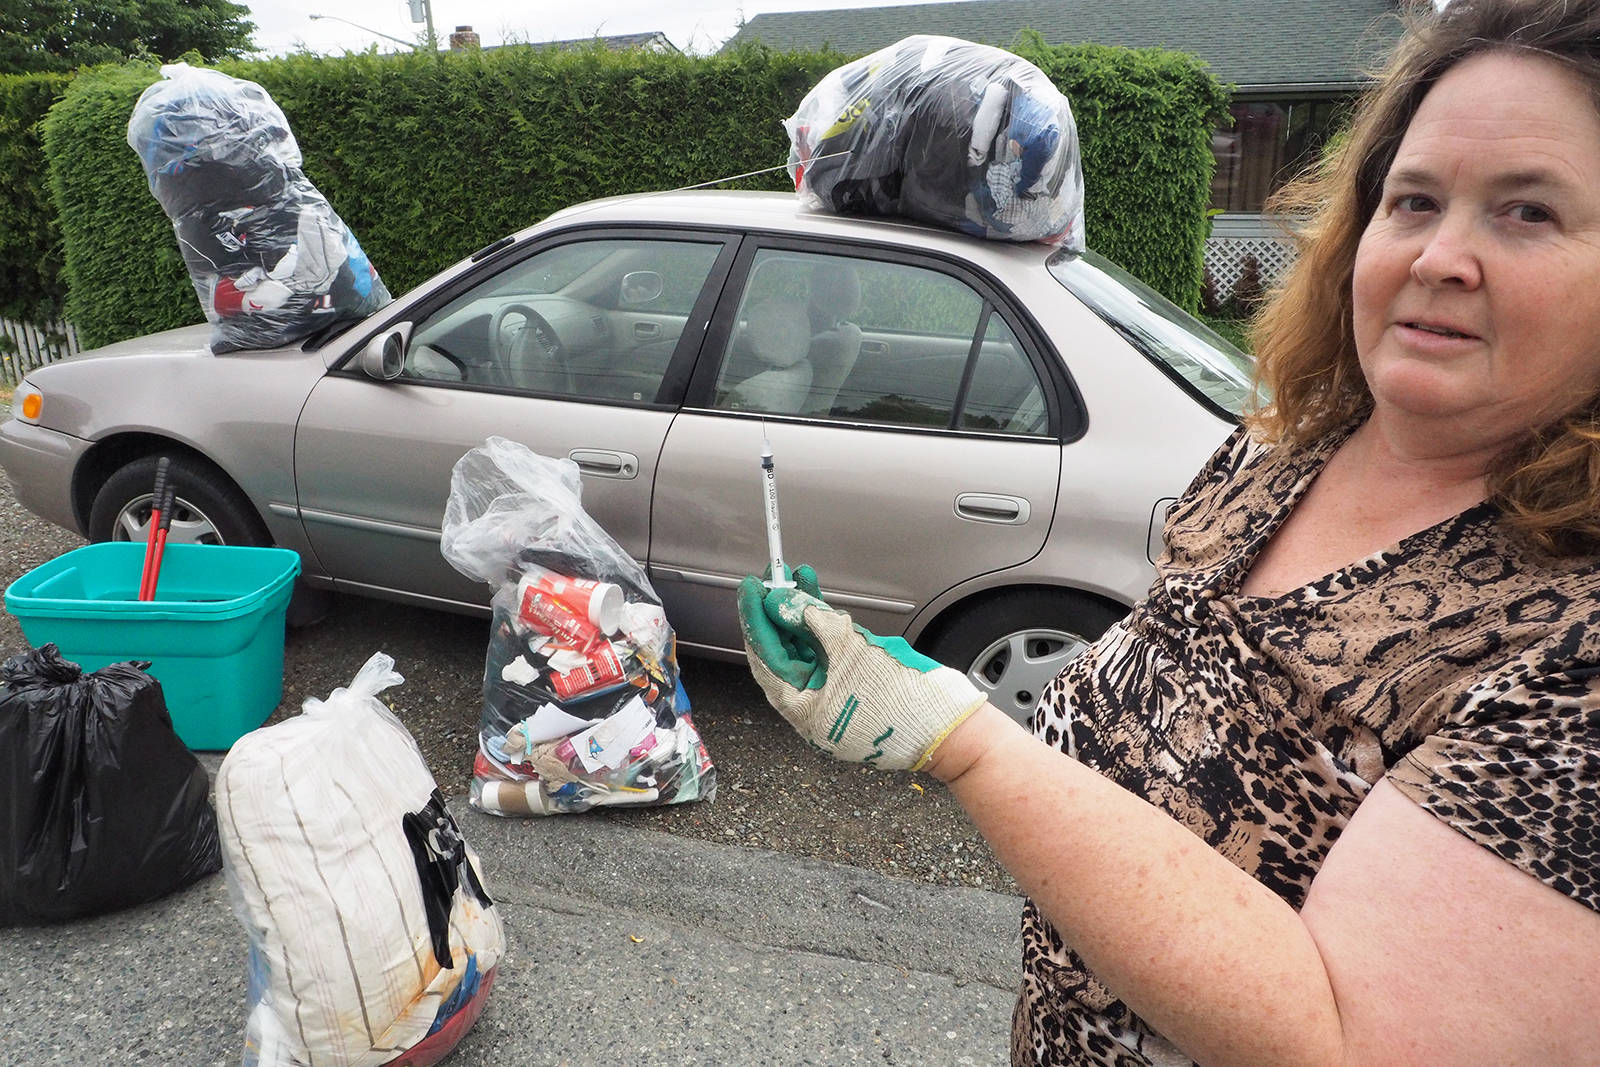 Along with several bags of items left behind by the people who stole her car, Tiffany Braun, of Nanaimo, also found a used syringe next to the seat that was left behind by the ICBC subcontractor hired to 'bio-clean' the vehicle. (CHRIS BUSH/The News Bulletin)